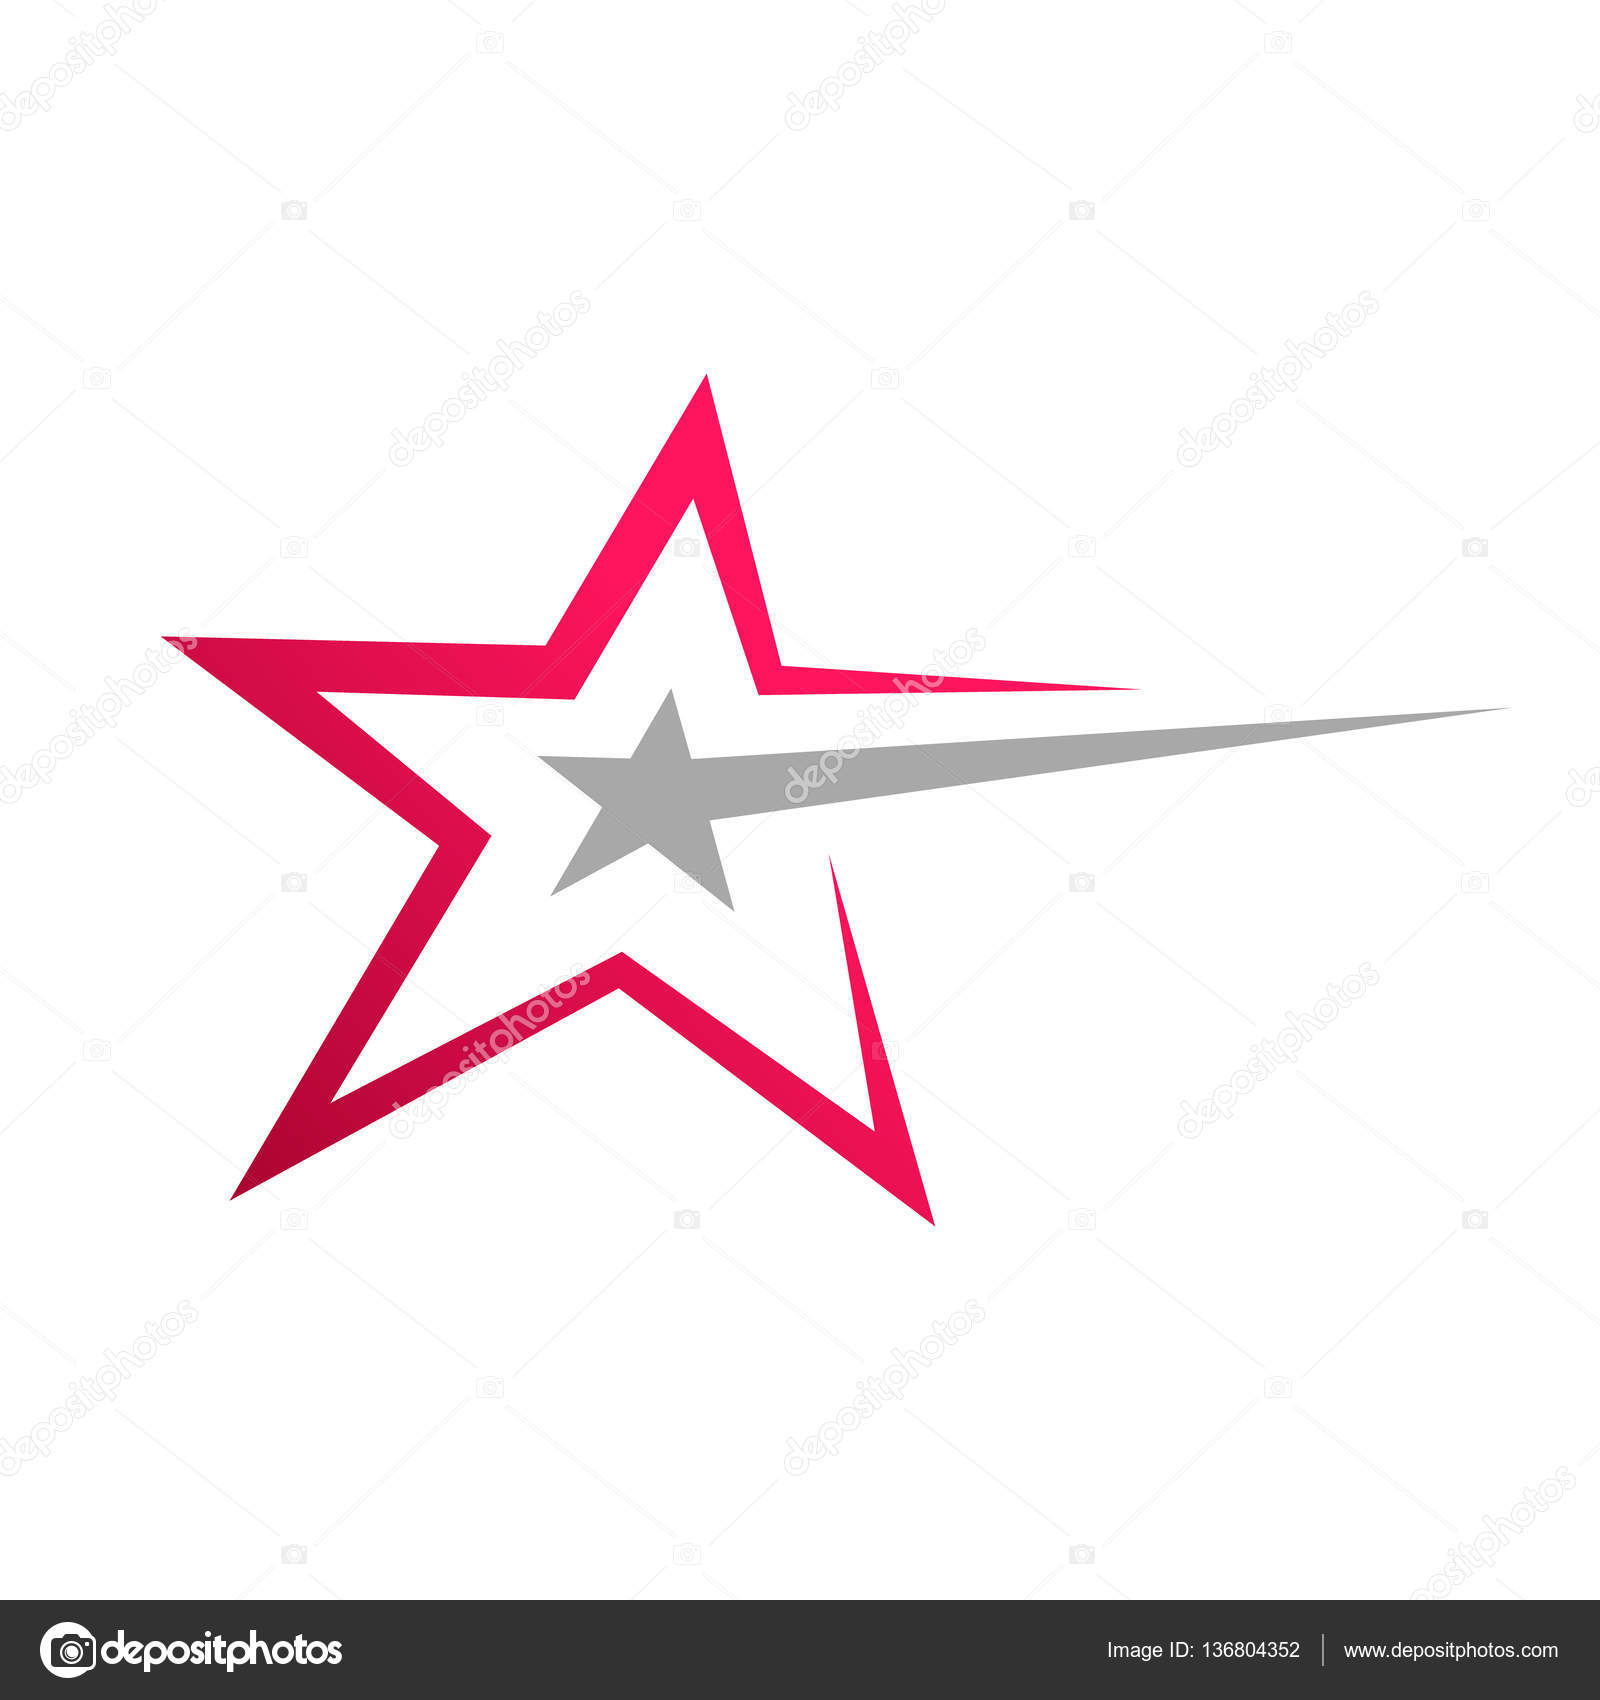 Stylish Star Symbol Stock Vector Srirejeki 136804352